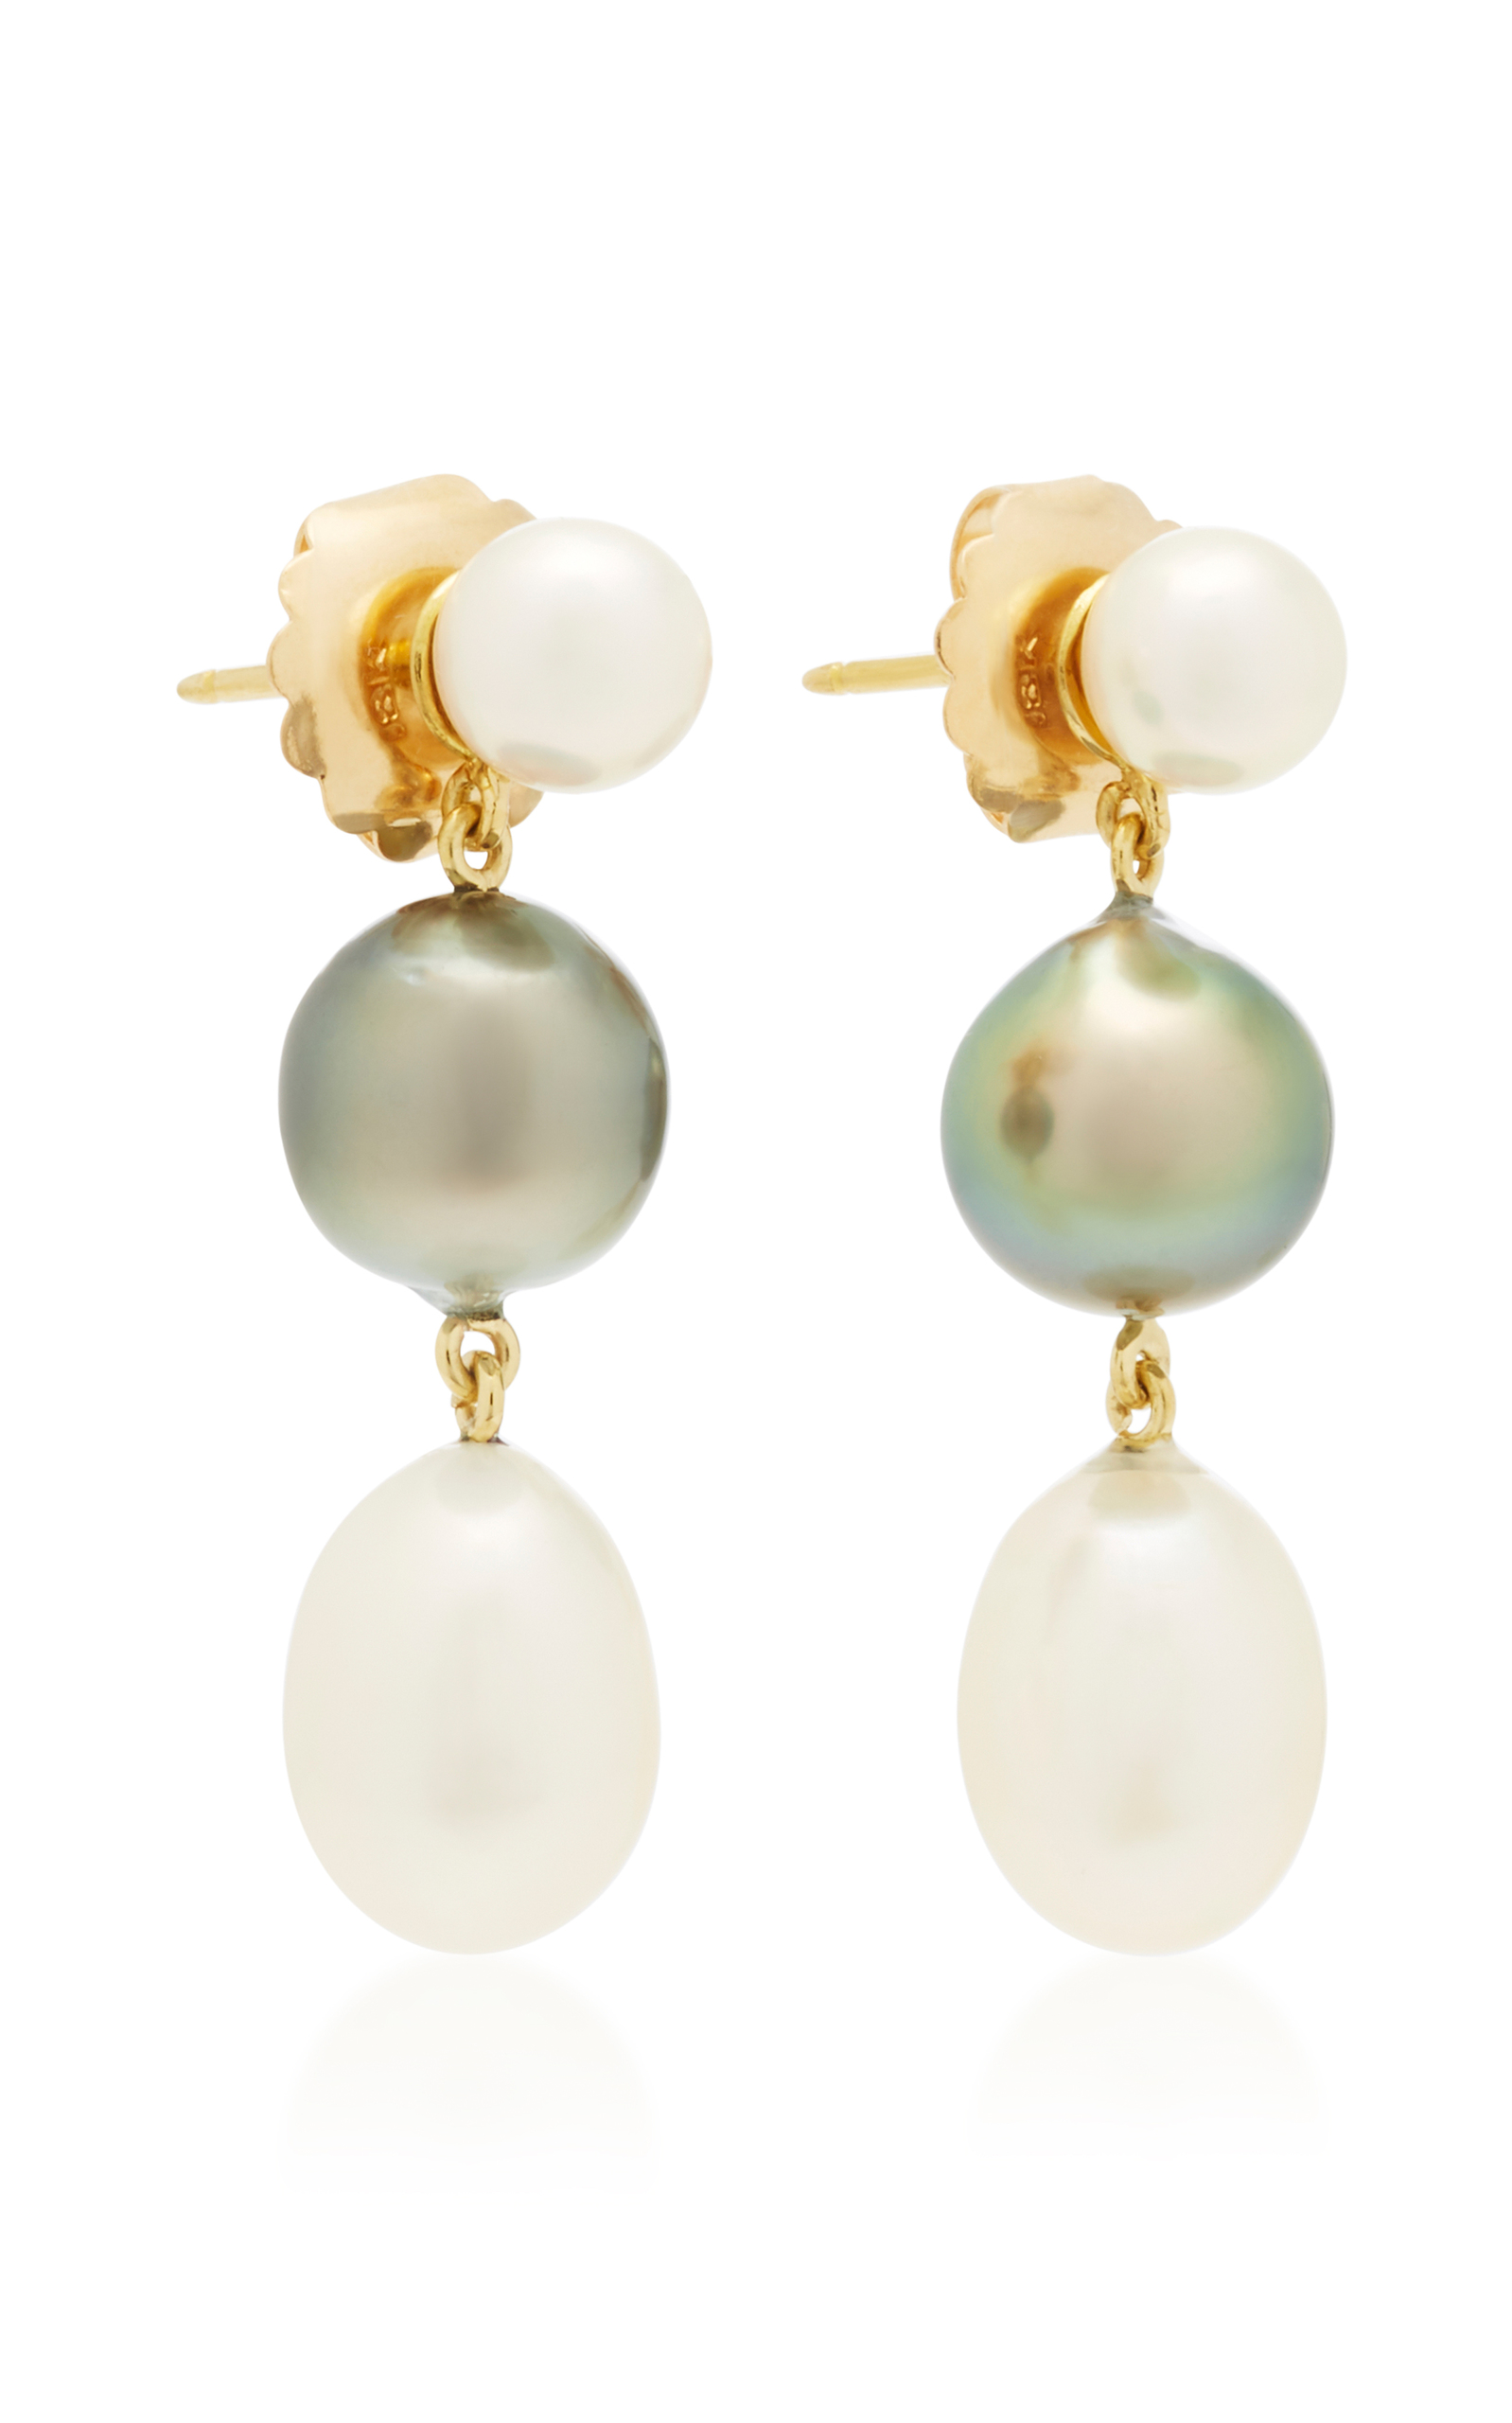 buhai sophie enlarged earrings the francis real pearl jewelry products drop